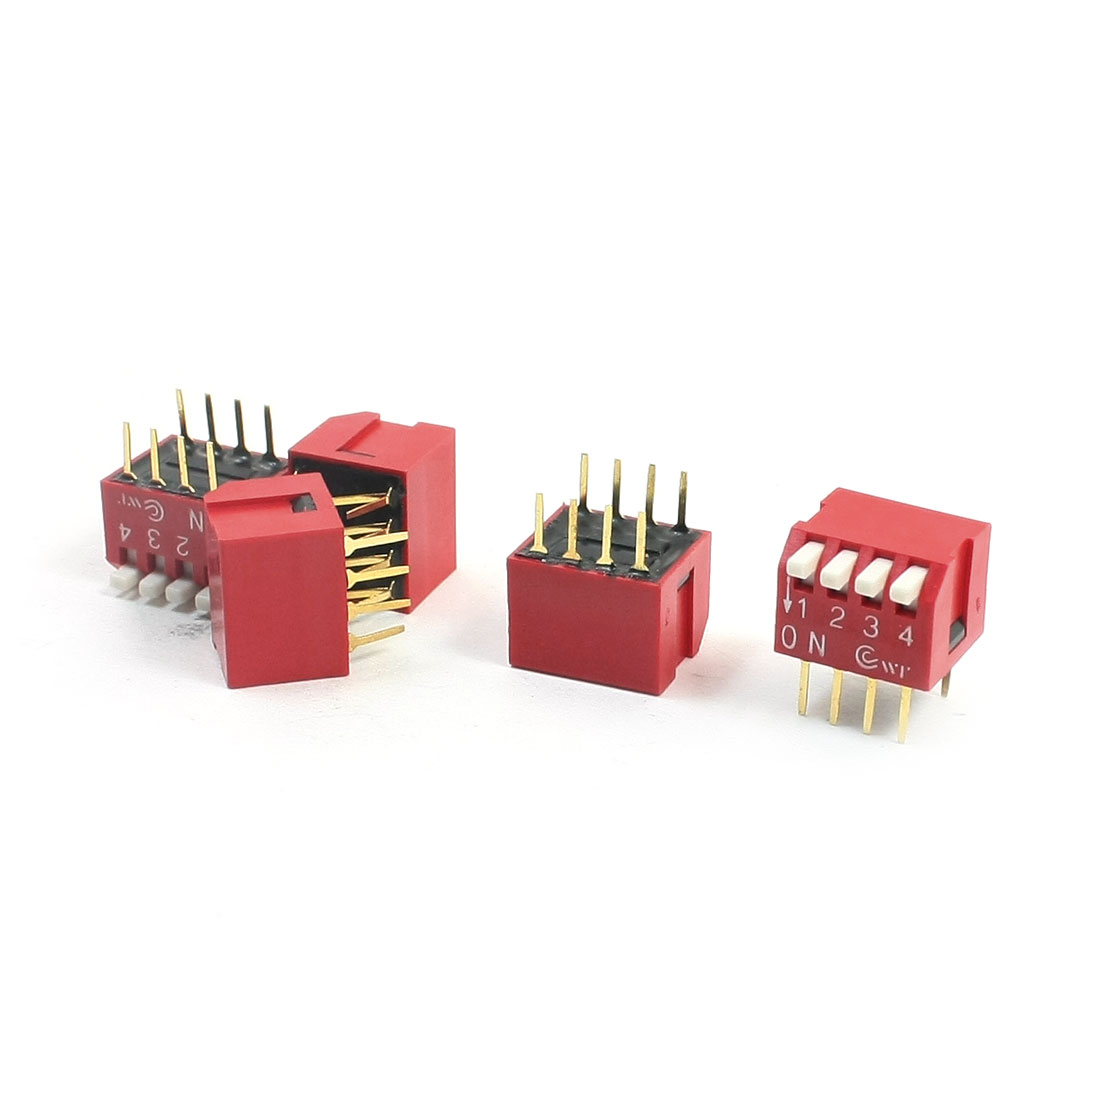 5Pcs 2.54mm Pitch 2-Row 4-Bit 8 Pin PCB Through Hole Mounting Slide Type DIP Switches Red